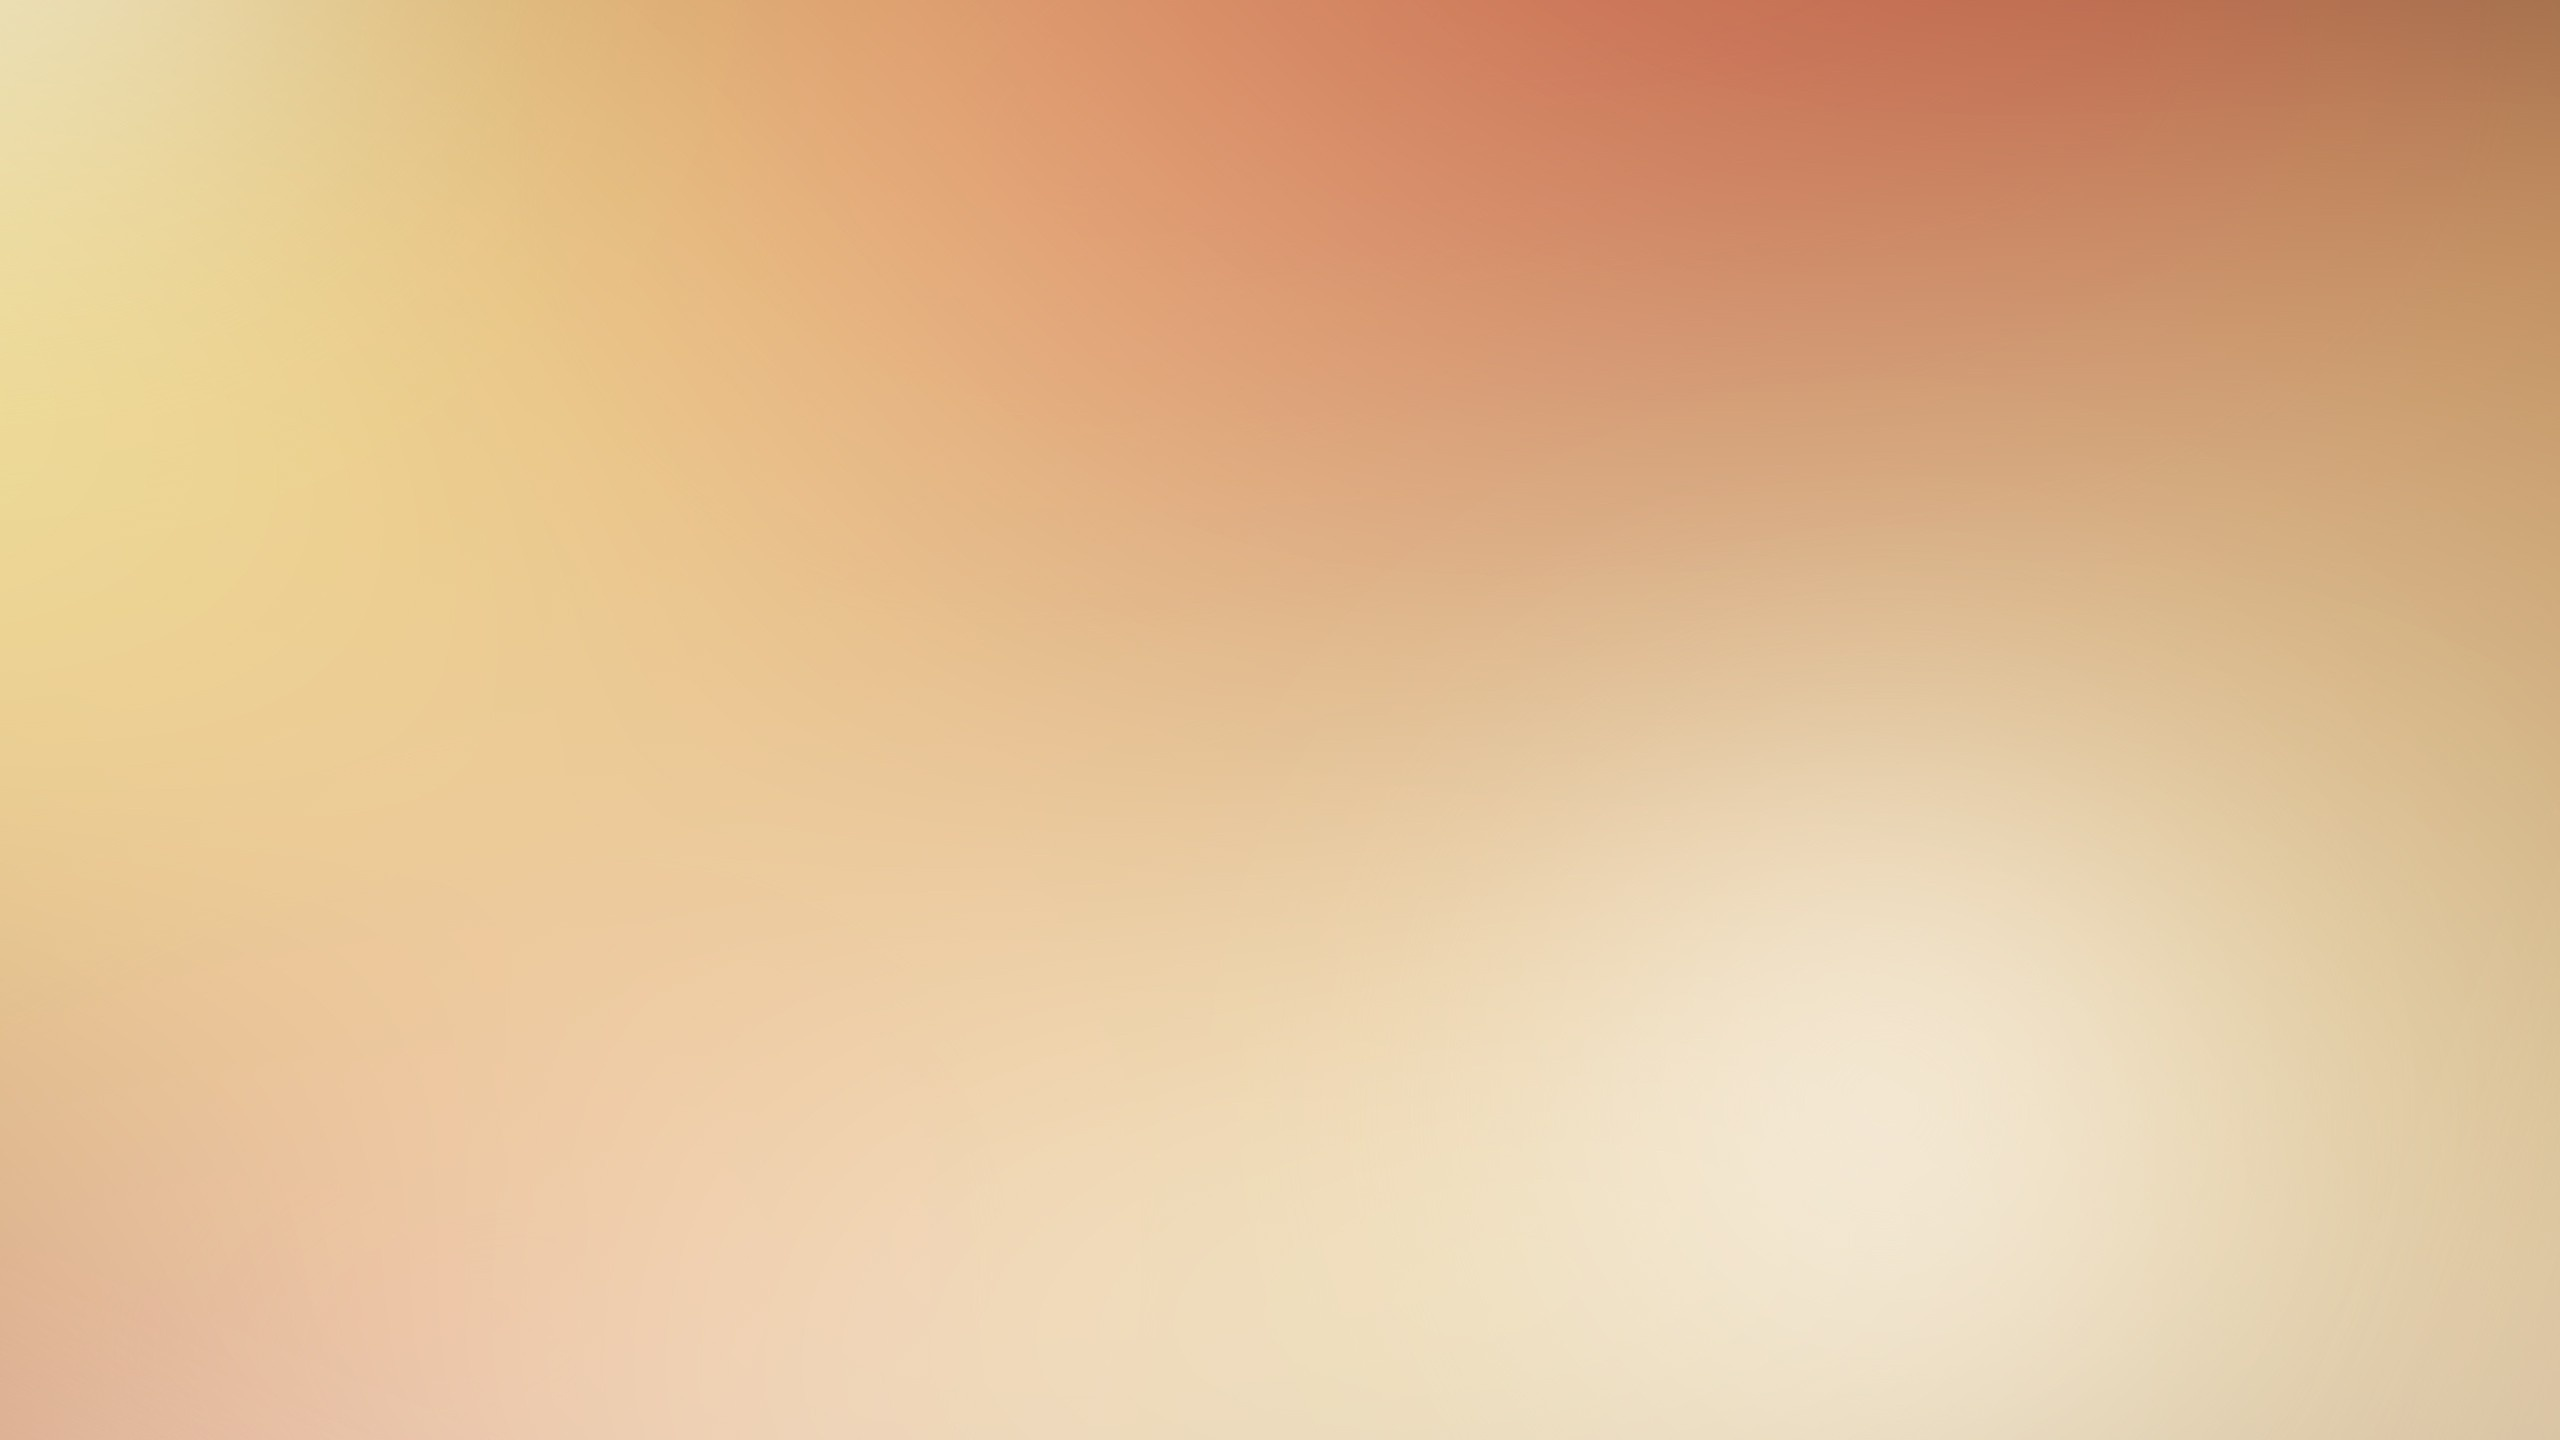 ws_Light_Orange_Gaussian_Blur_2560x1440